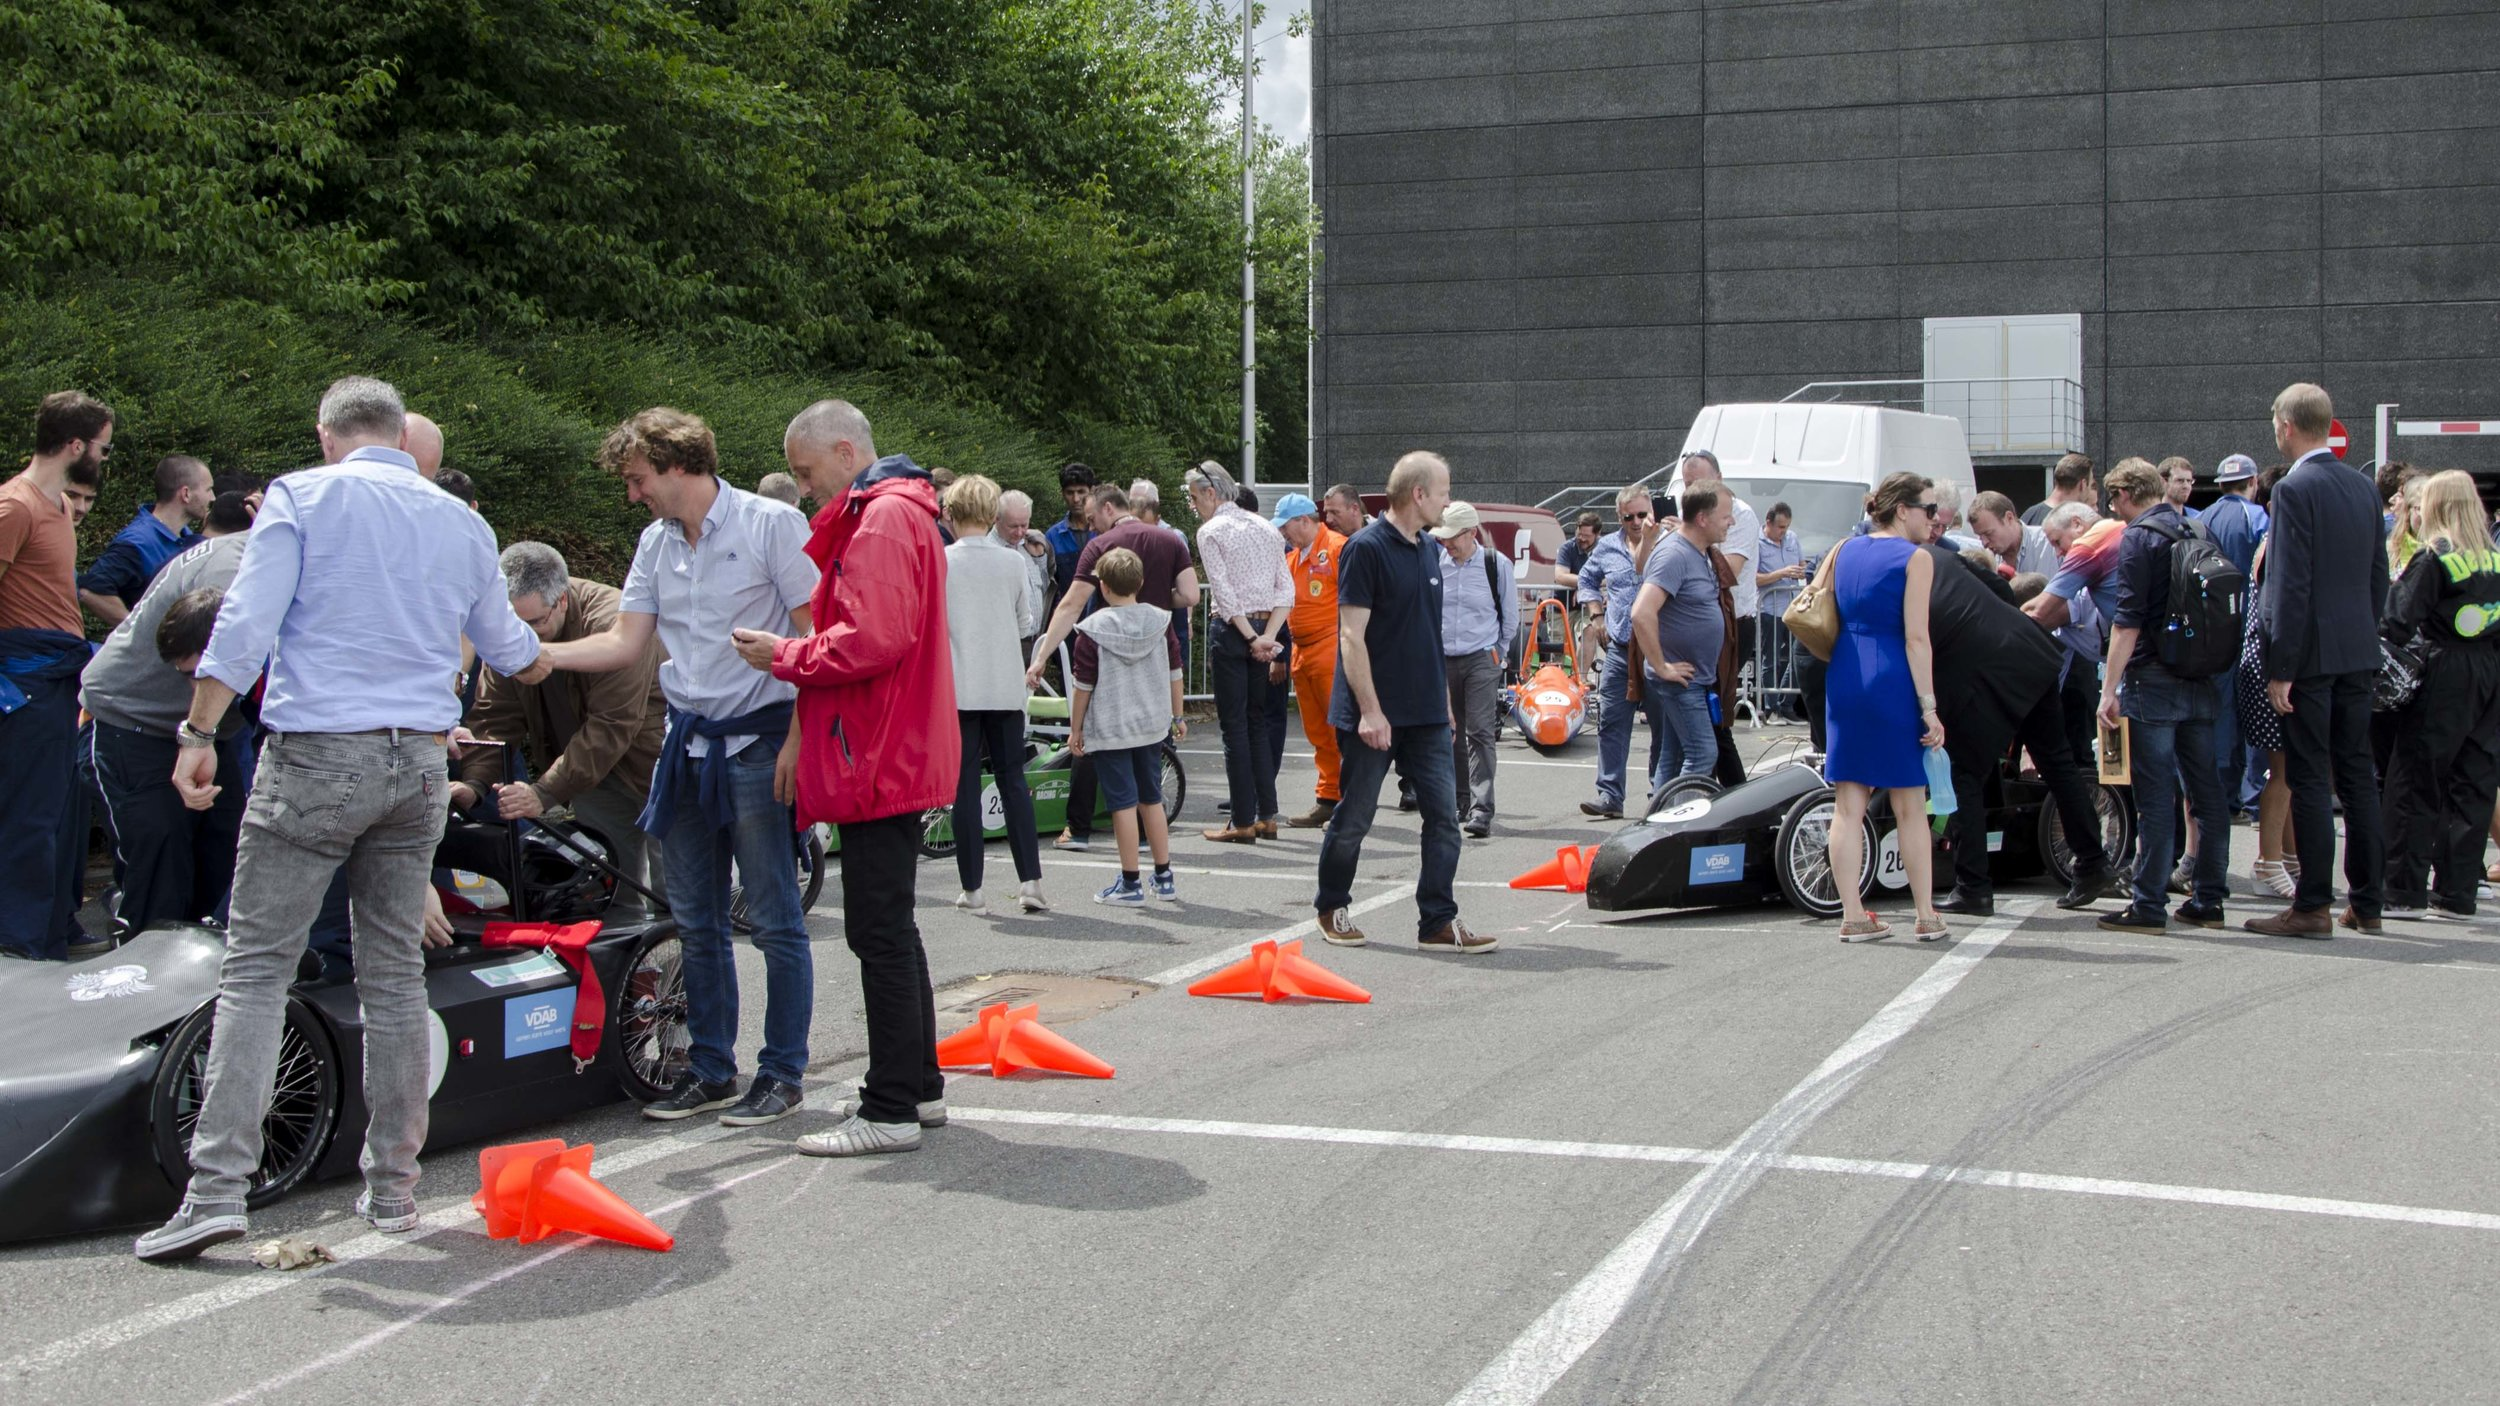 Race Greenpower Benelux 2017 at Evodays 2017